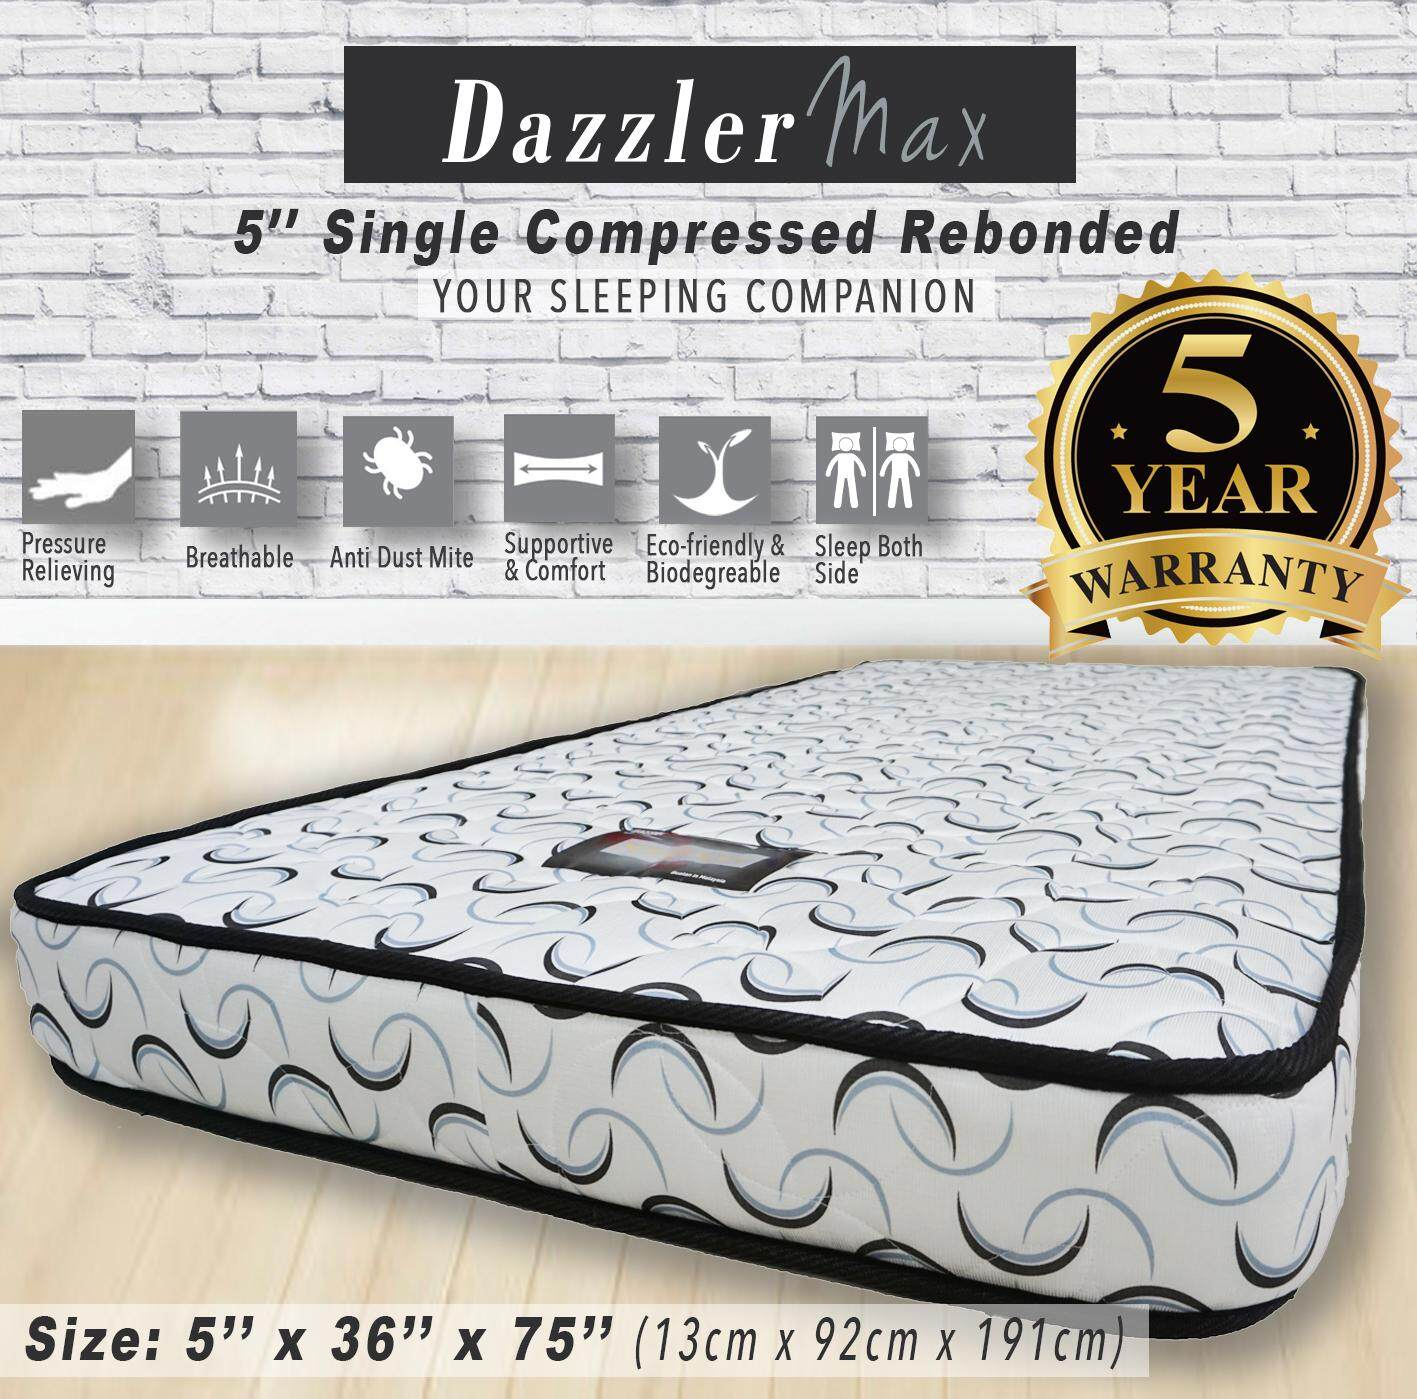 Ratings On Mattresses >> Mattresses By Dazzler Max Reviews Ratings And Best Price In